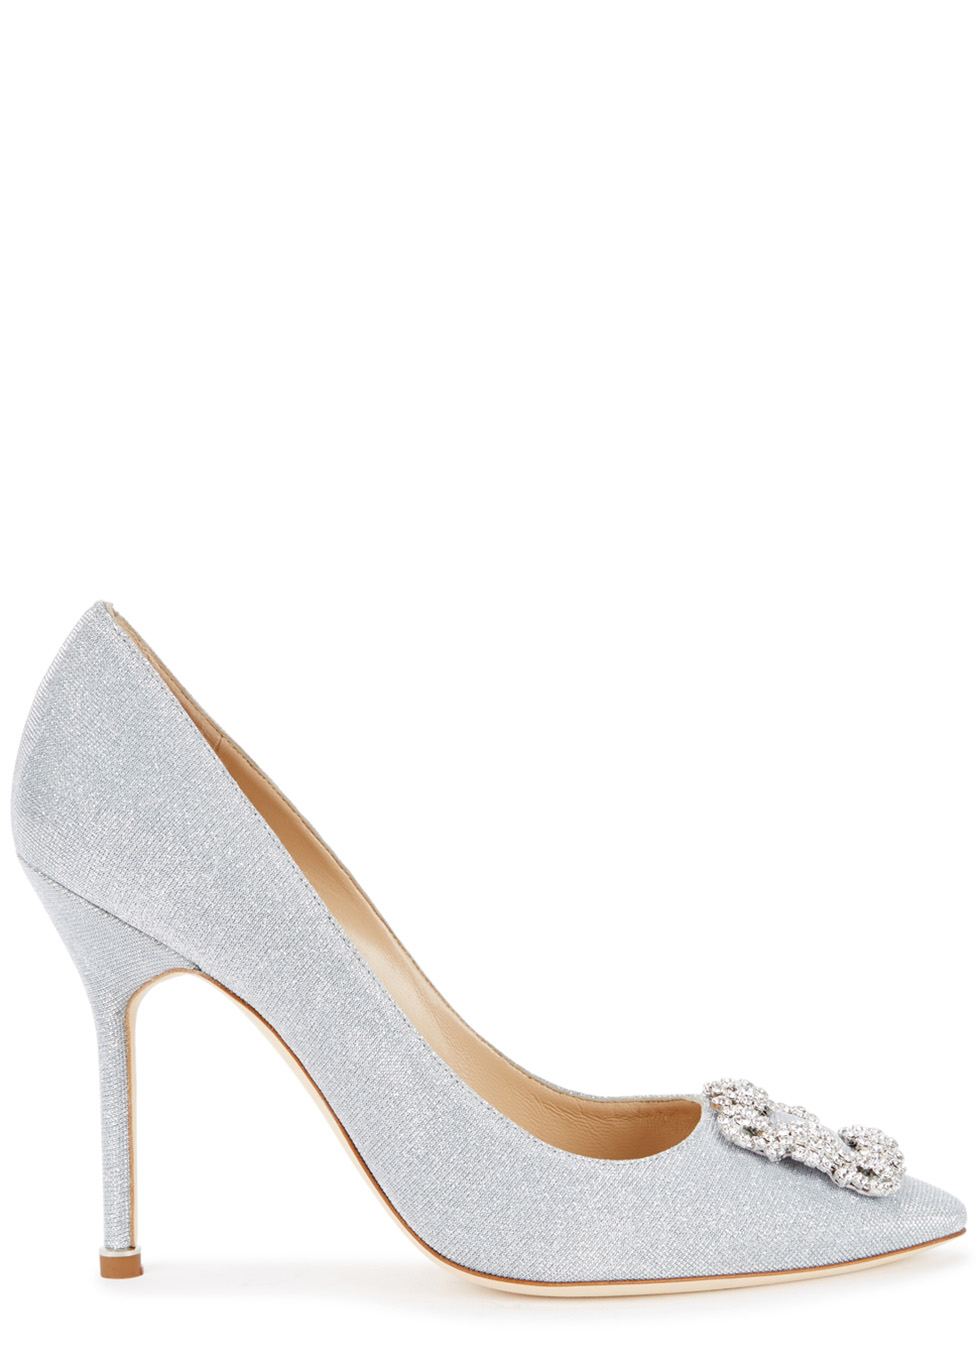 SILVER JEWEL BUCHLED PUMPS